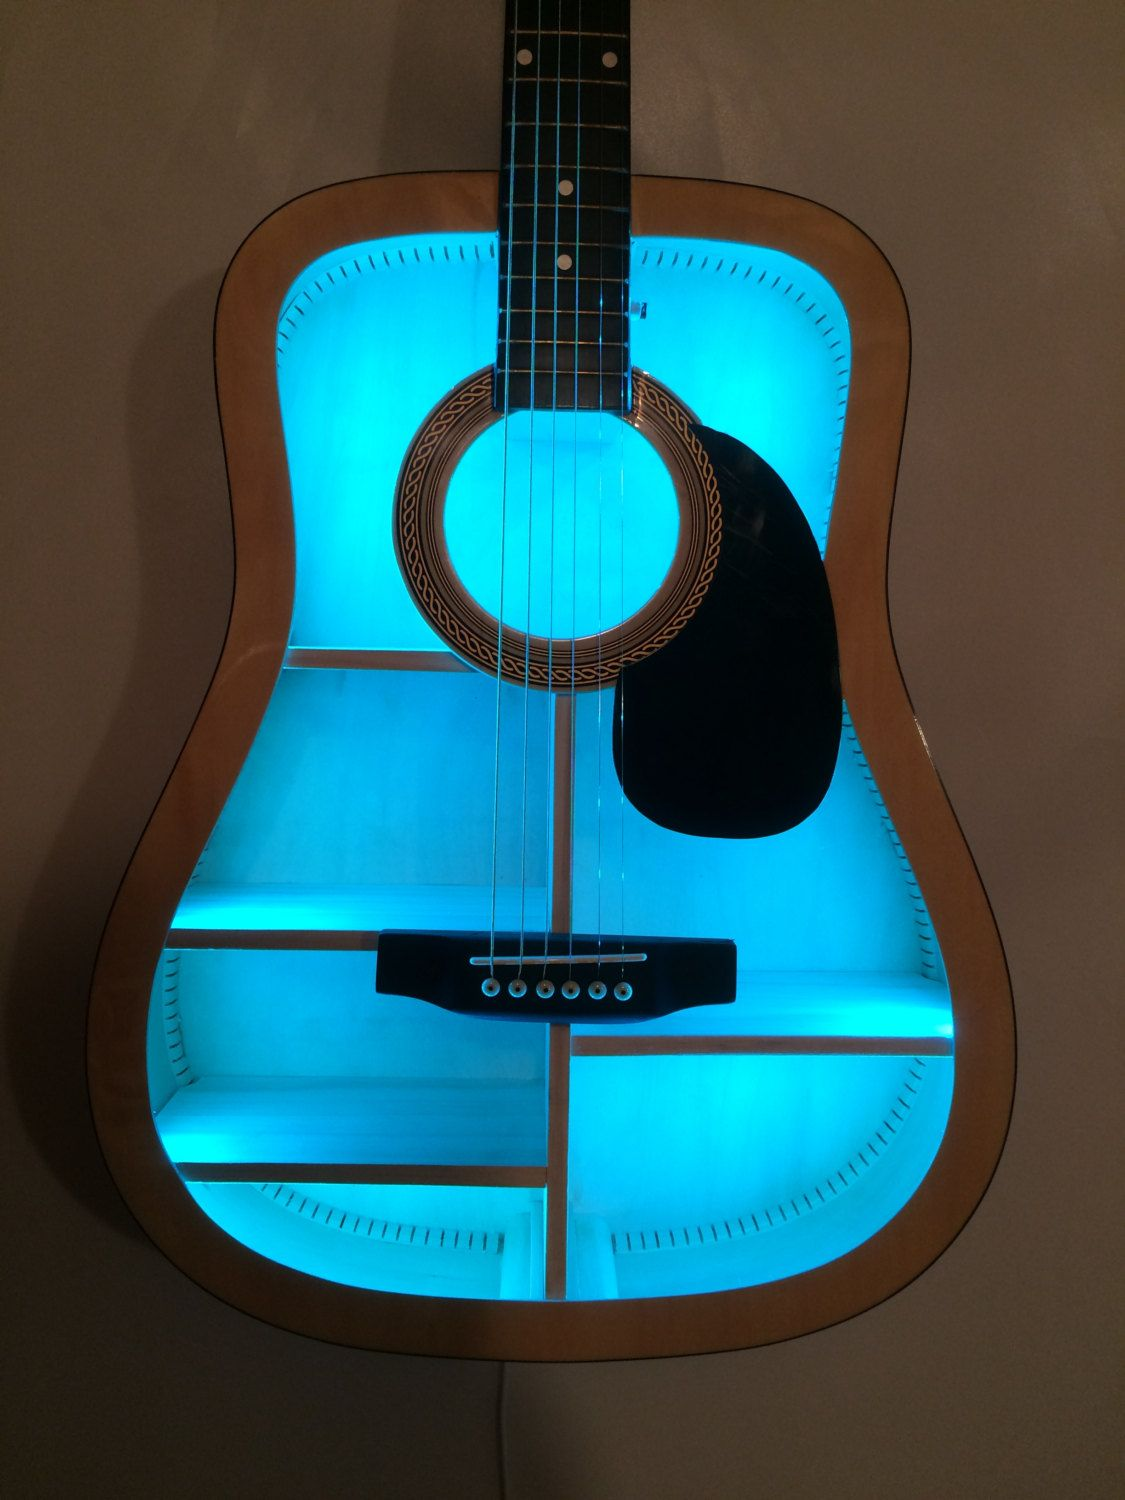 Guitar Shelf 50 Recycled Acoustic Guitar With Color Changing L E D And Custom Shelves 16 Color Options By Ar Guitar Shelf Guitar Shelf Diy Music Furniture